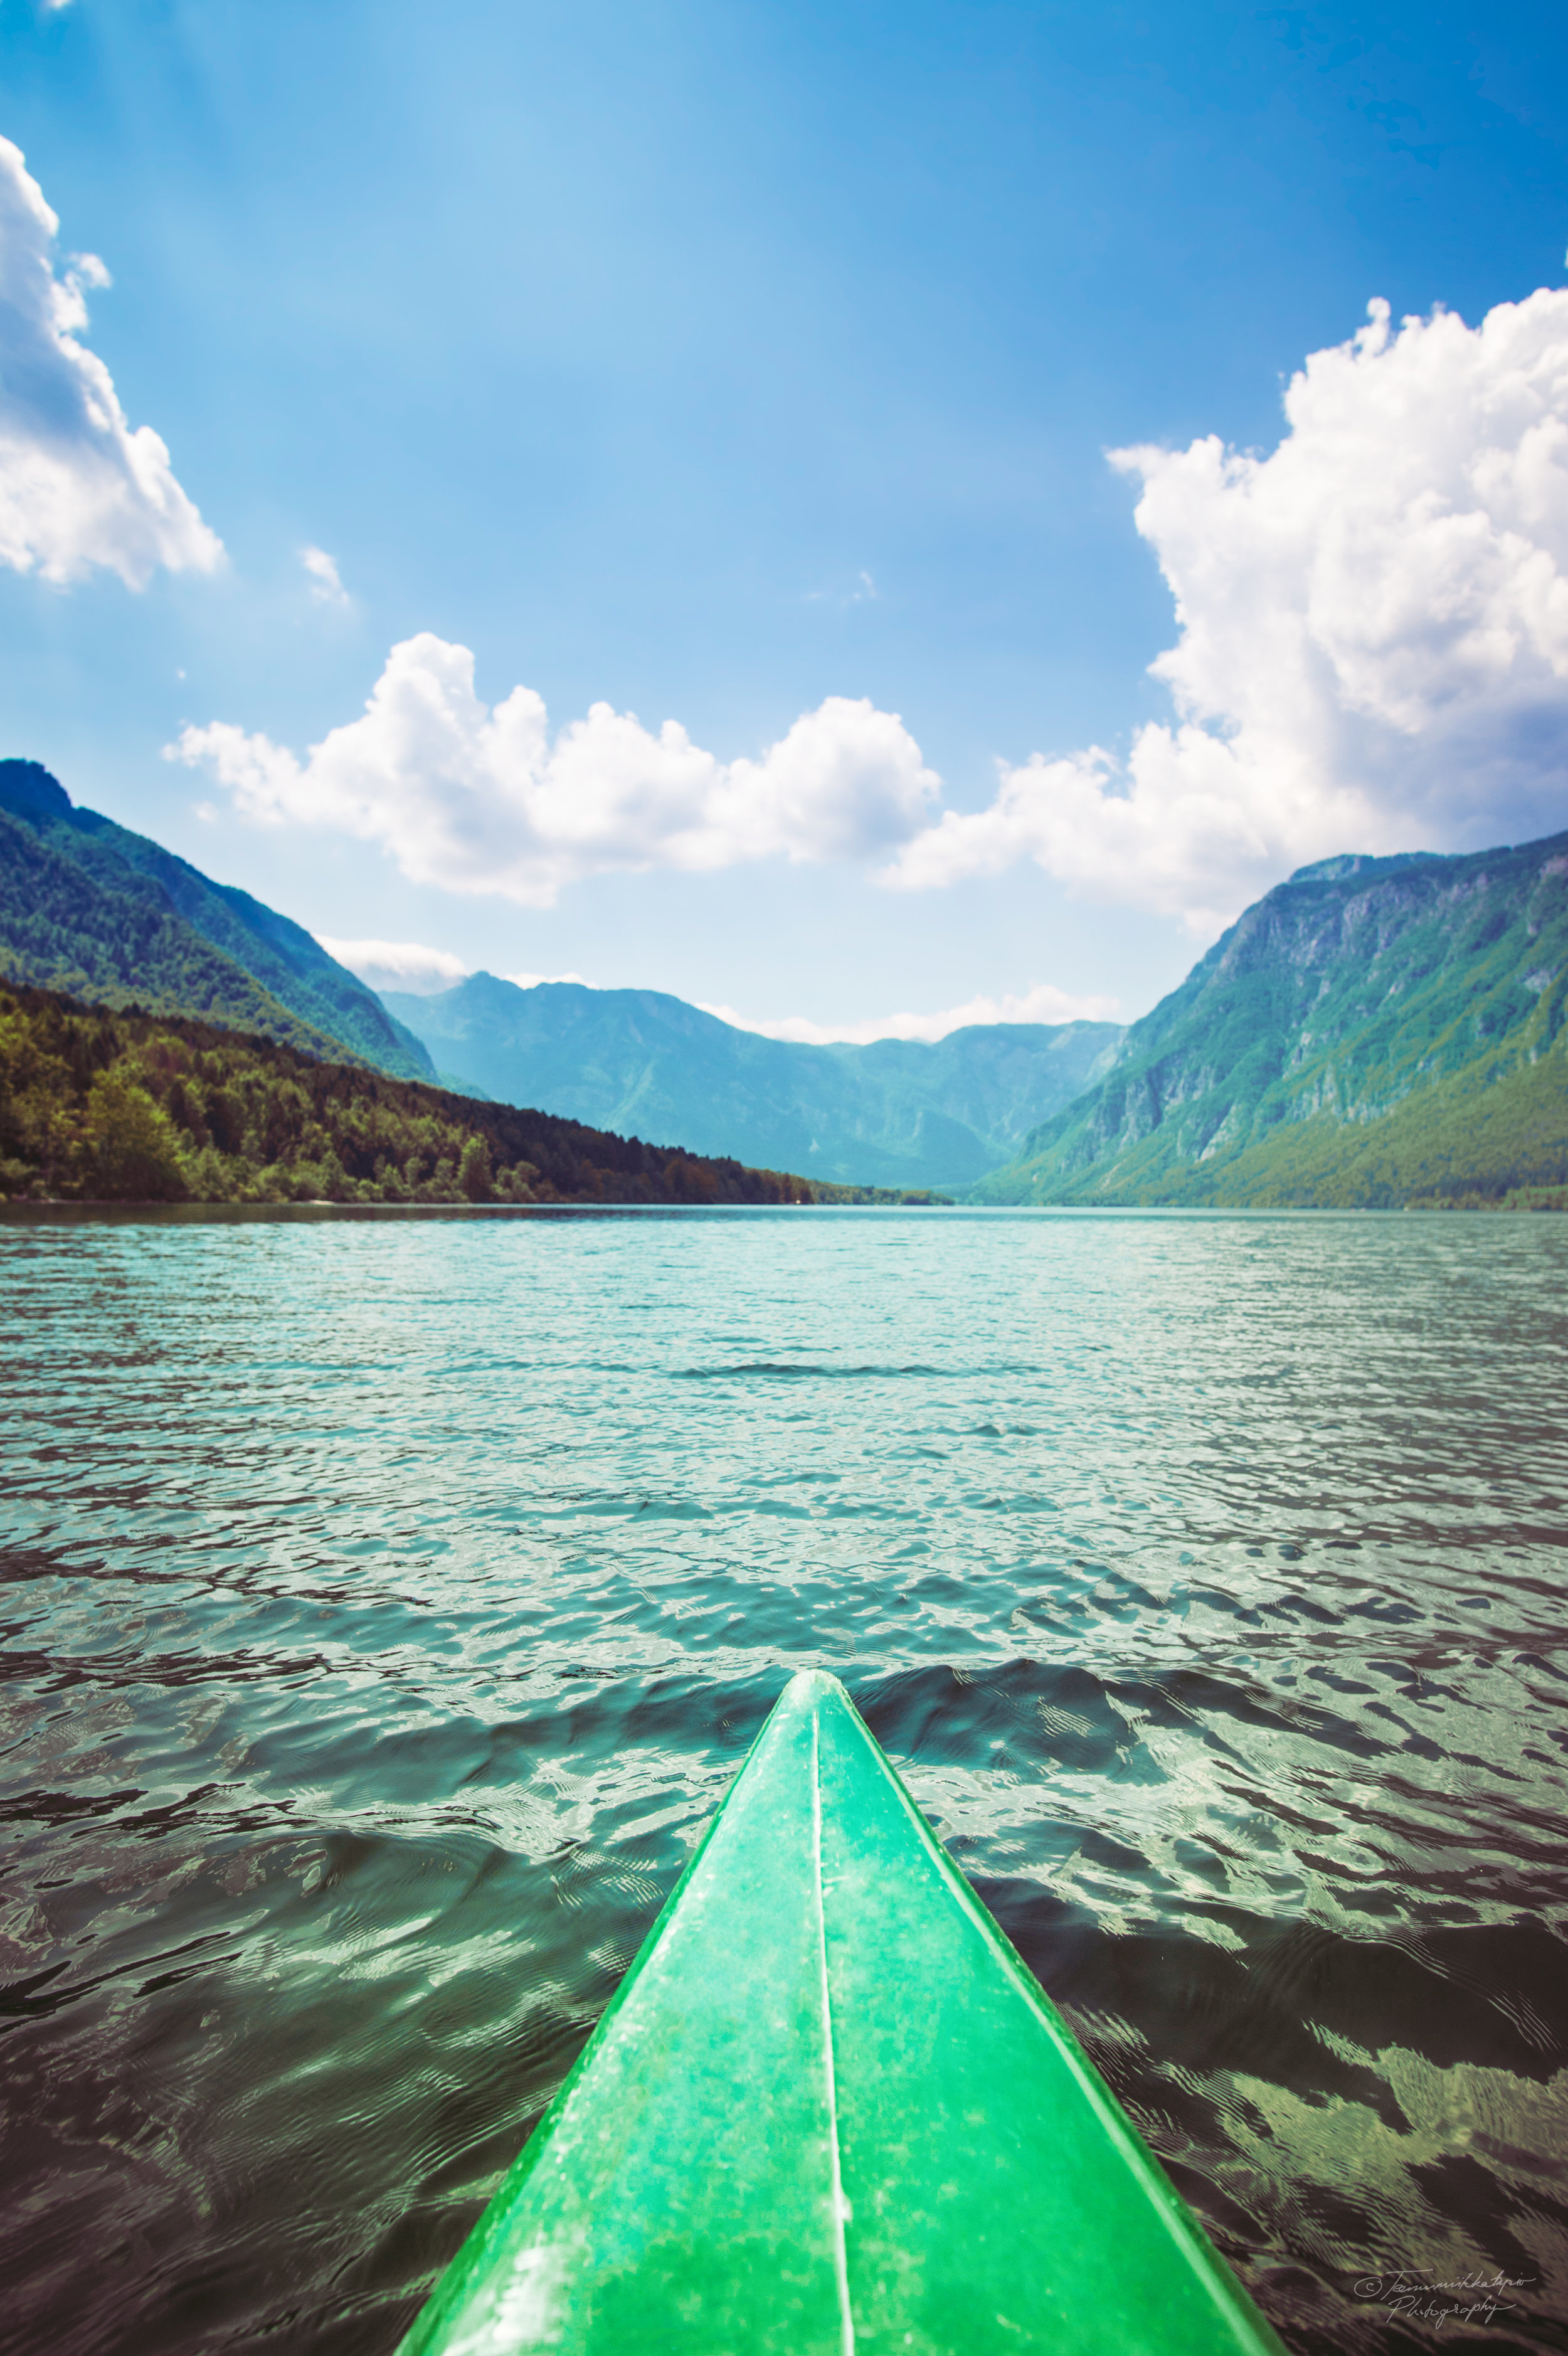 Cayaking on a slowenian lake on a summer day.jpg